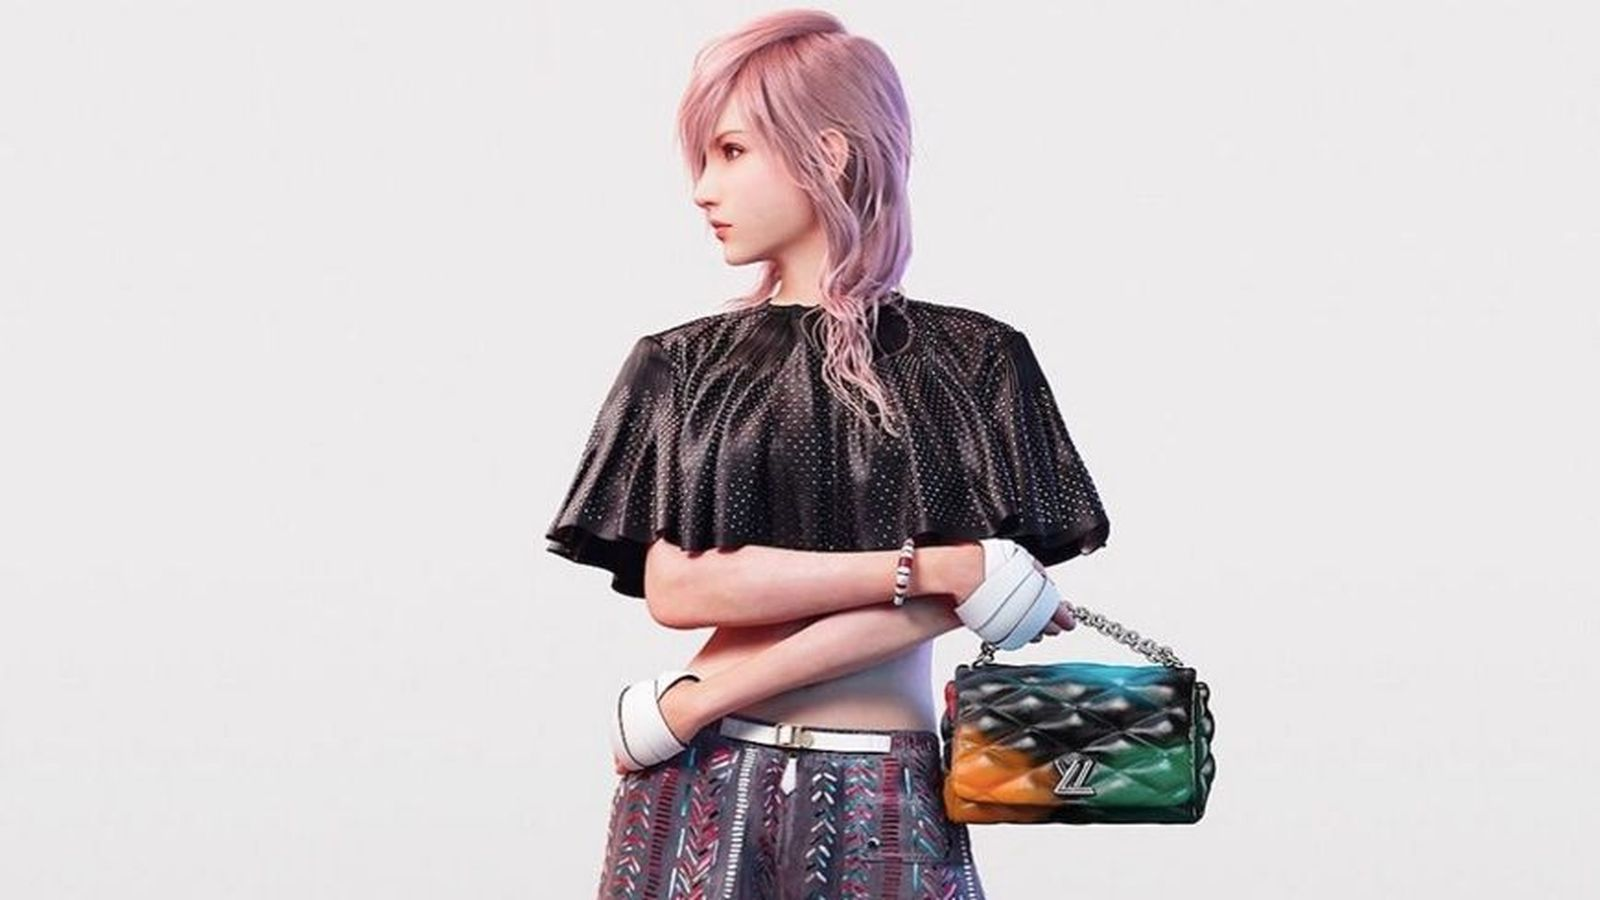 The overlap between Final Fantasy XIII fans and people who splash out on Louis Vuitton handbags might be a slim one, but modern marketing is all about exploiting those profitable niches. At least,...